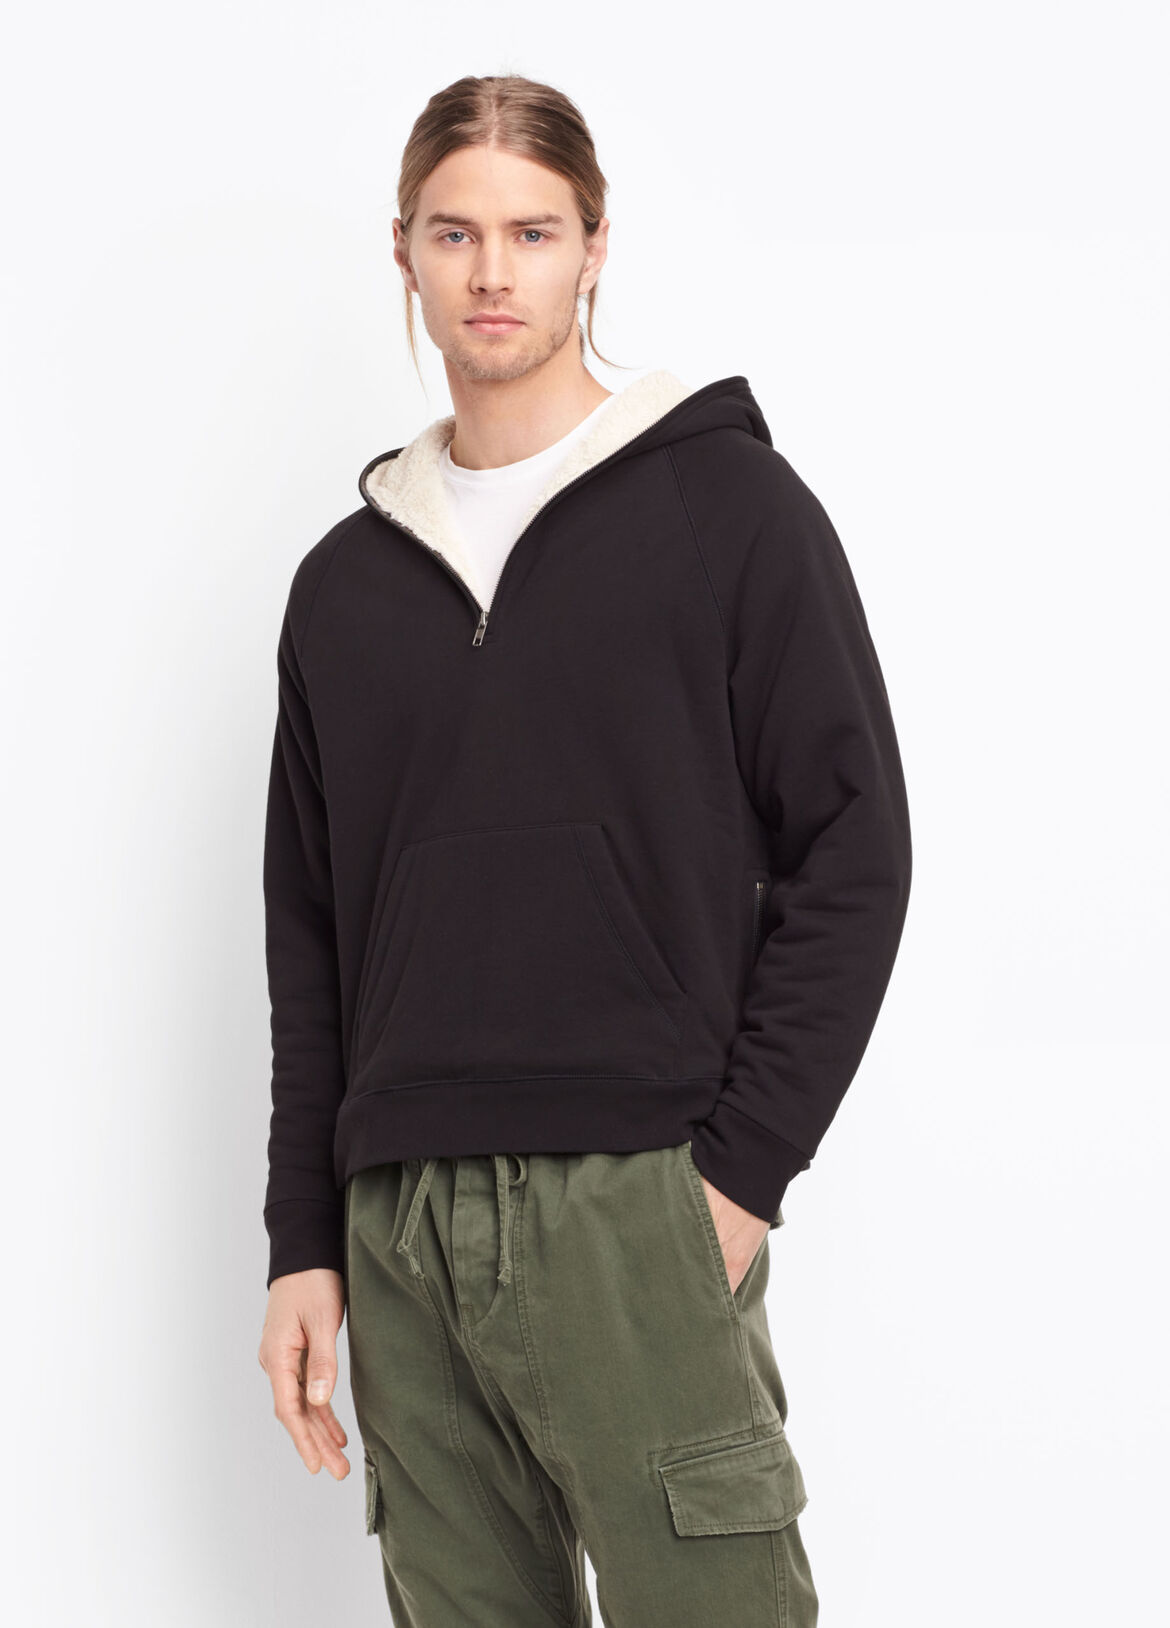 Hoodies and Sweatshirts for Men | Vince